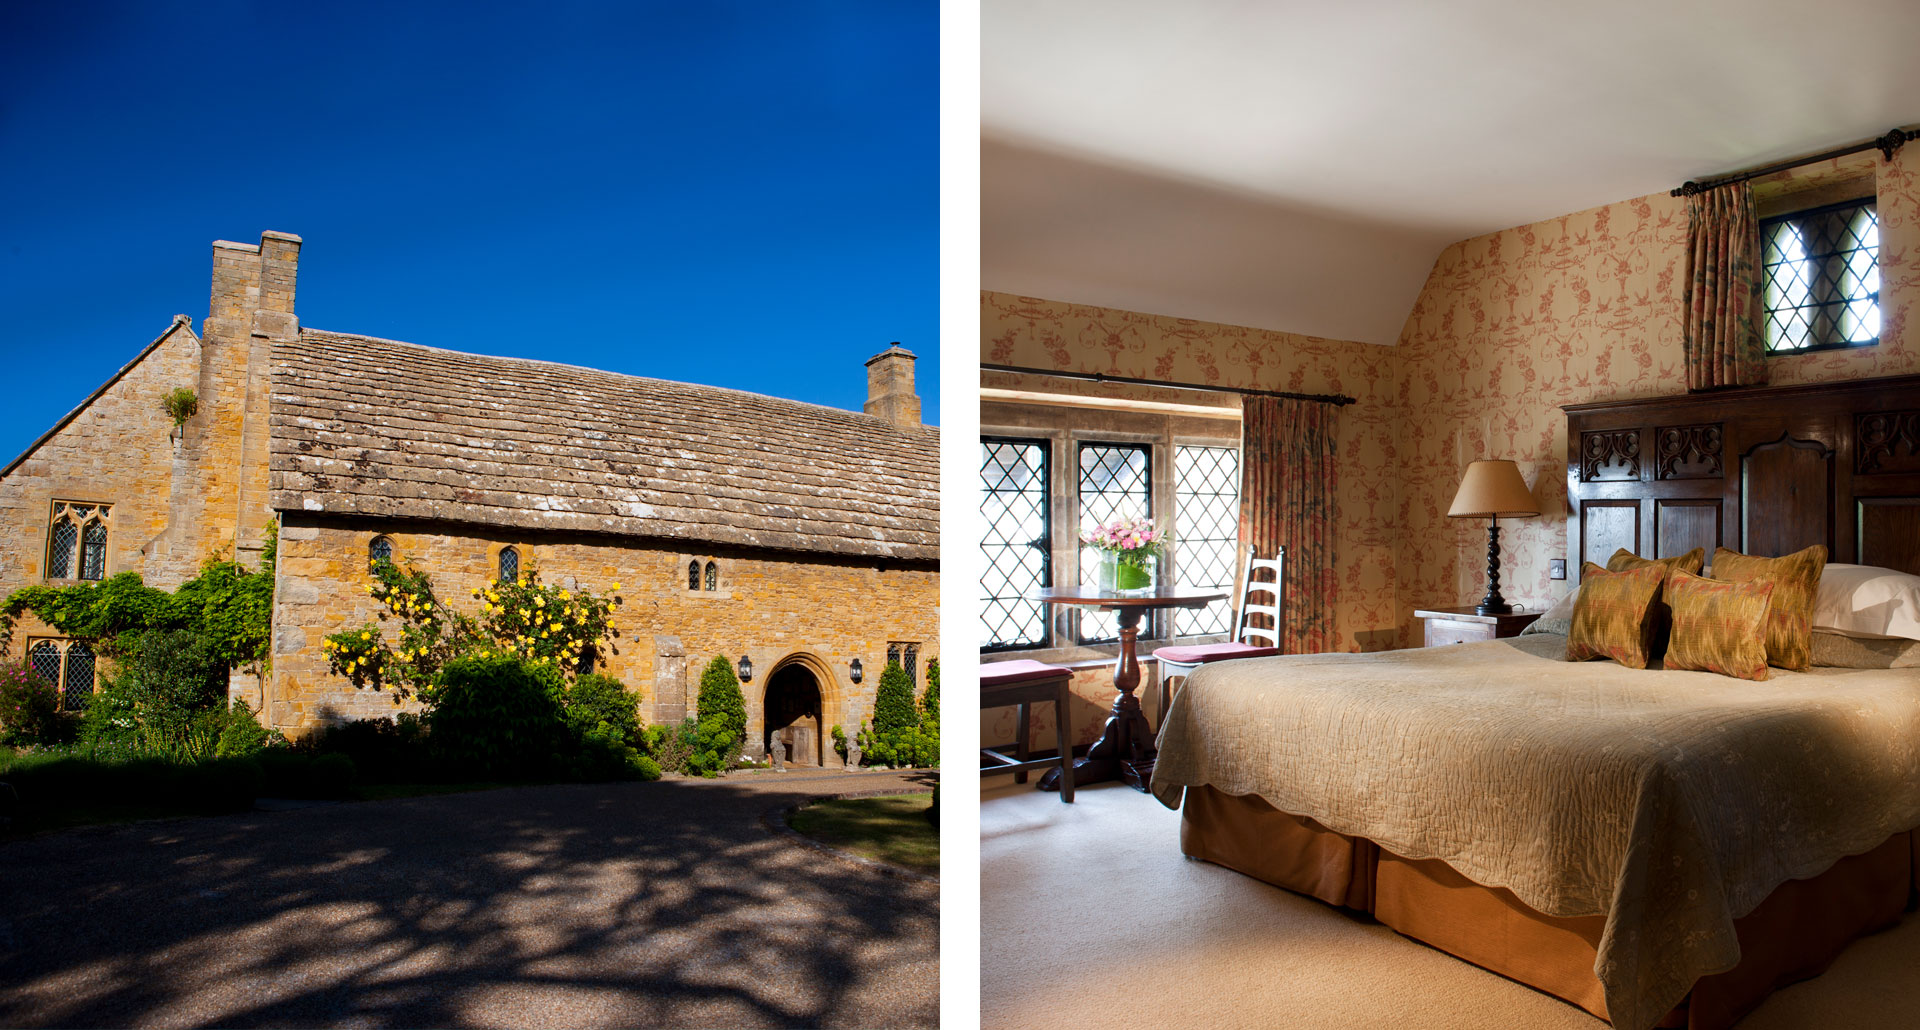 Bailiffscourt Hotel & Spa - boutique hotel in Climping